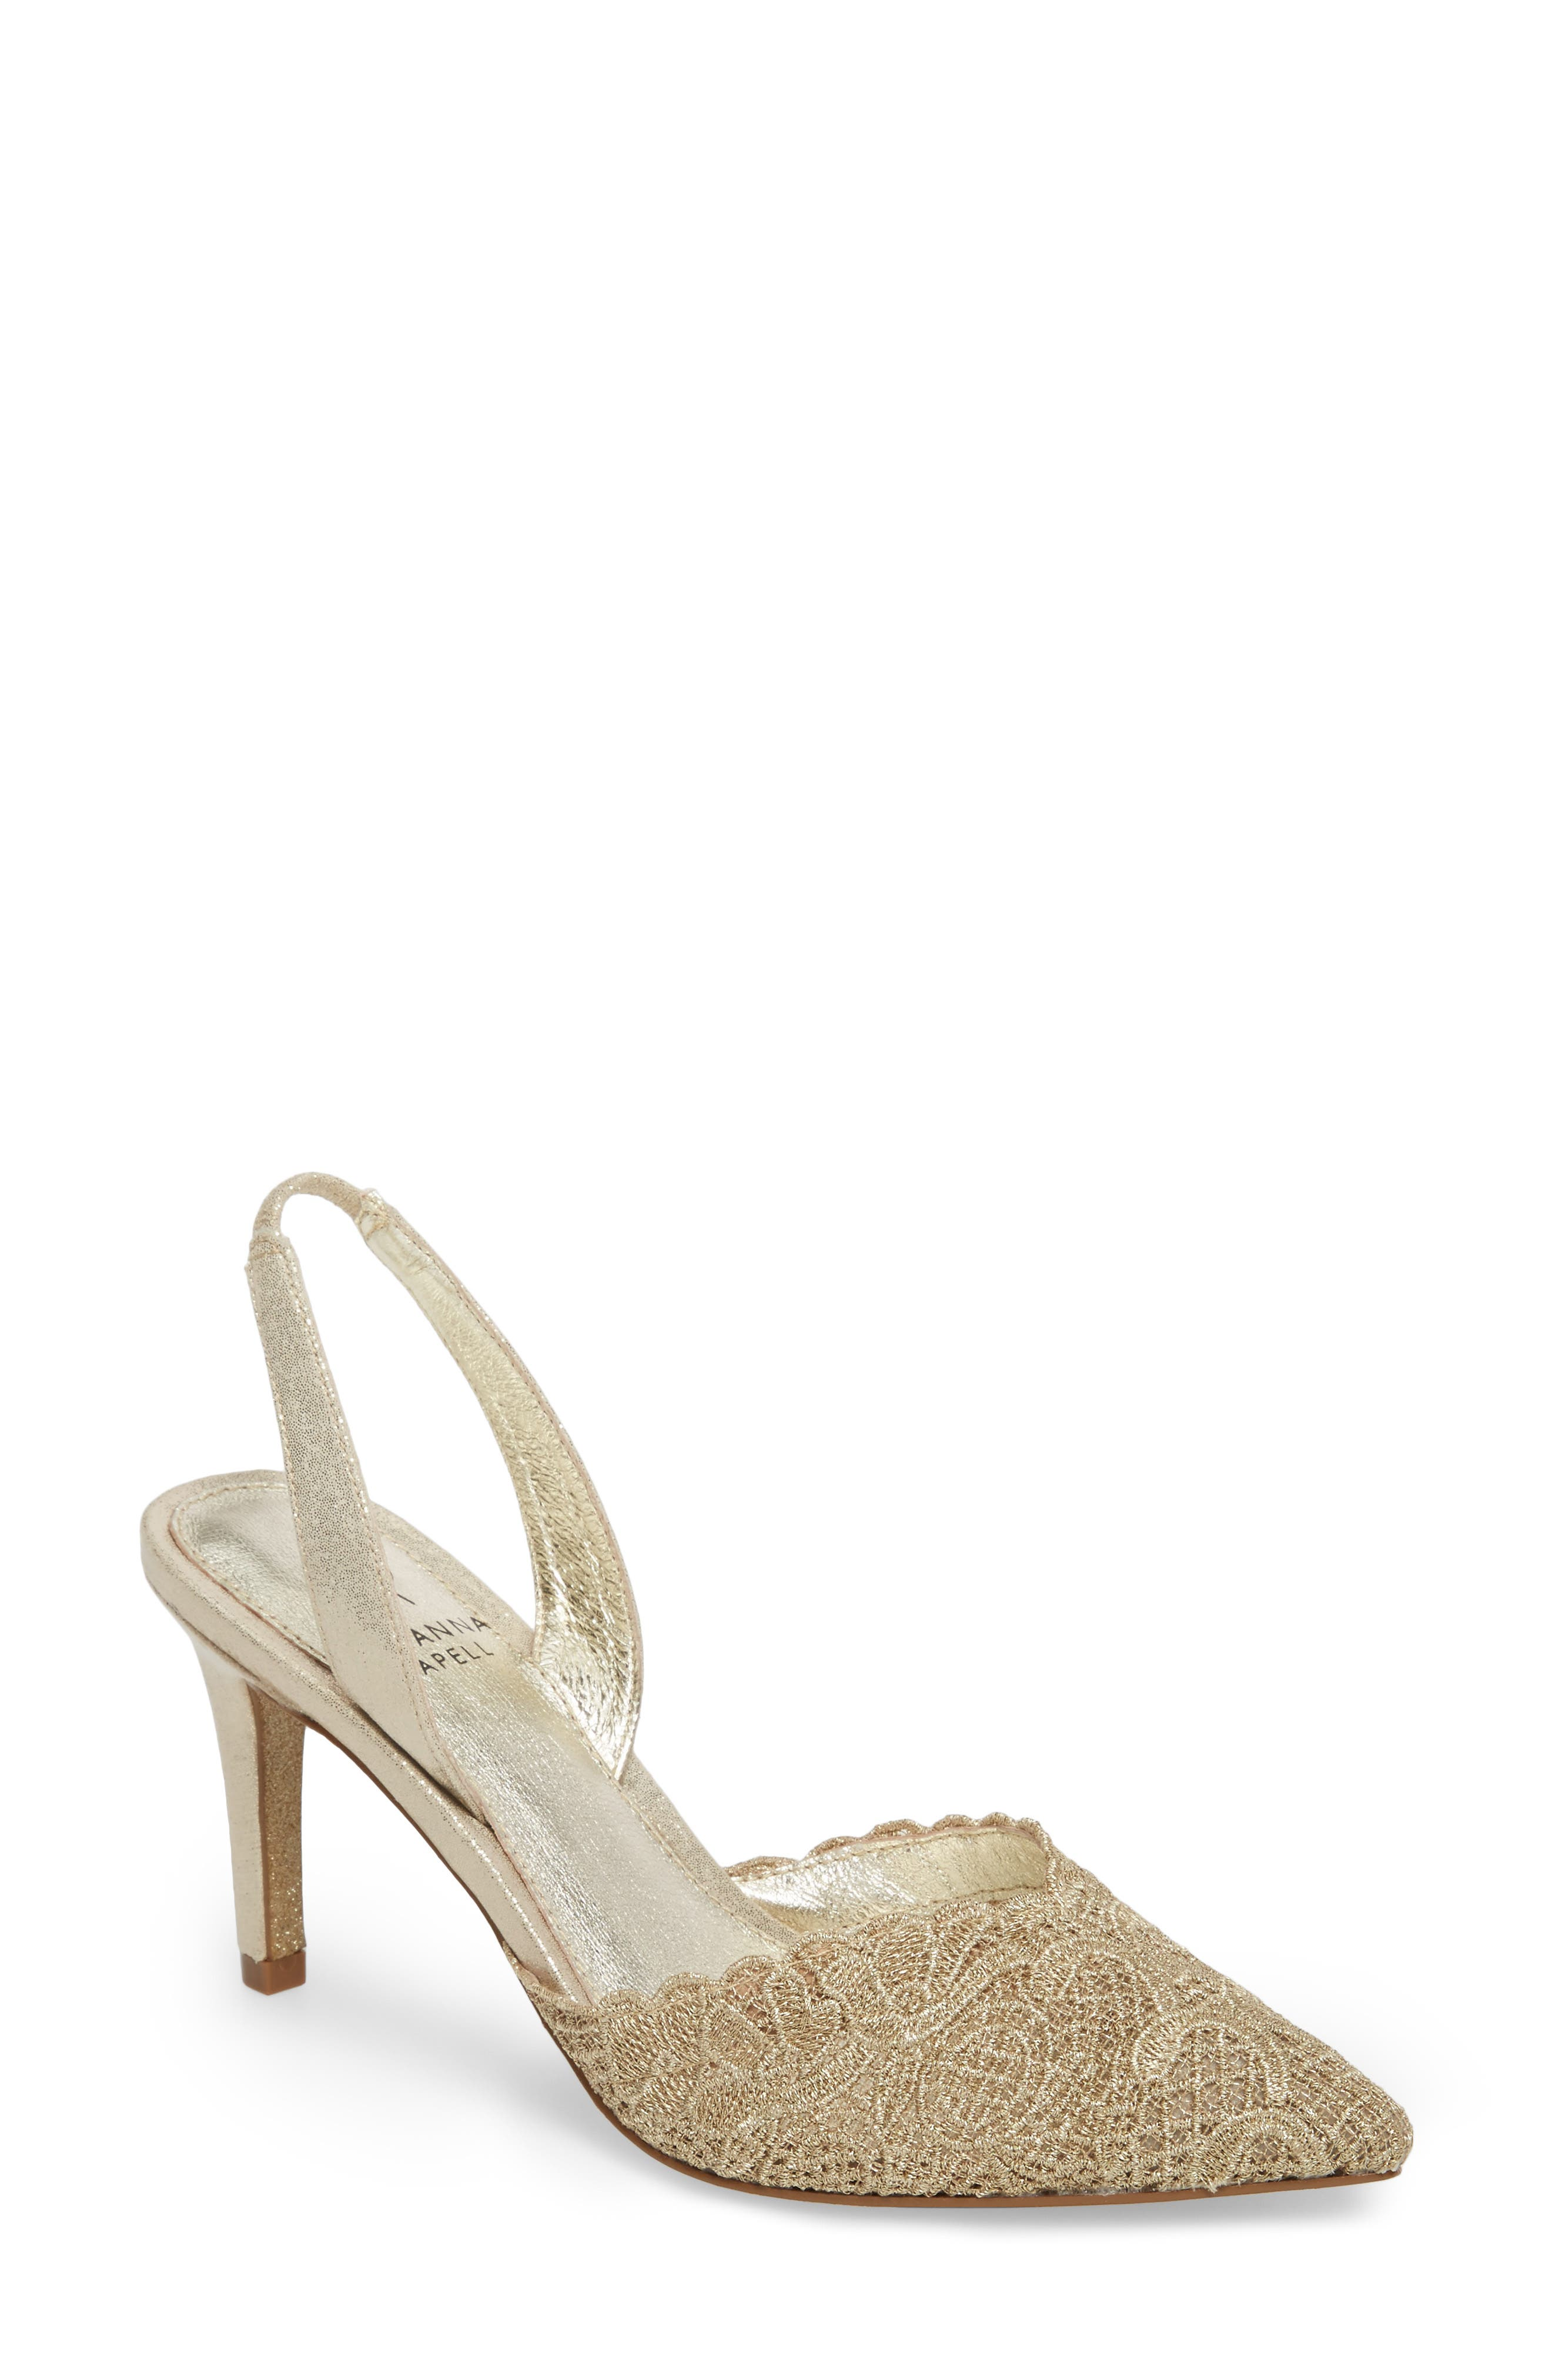 Hallie Slingback Pump,                         Main,                         color, Gold Attalie Lace Fabric